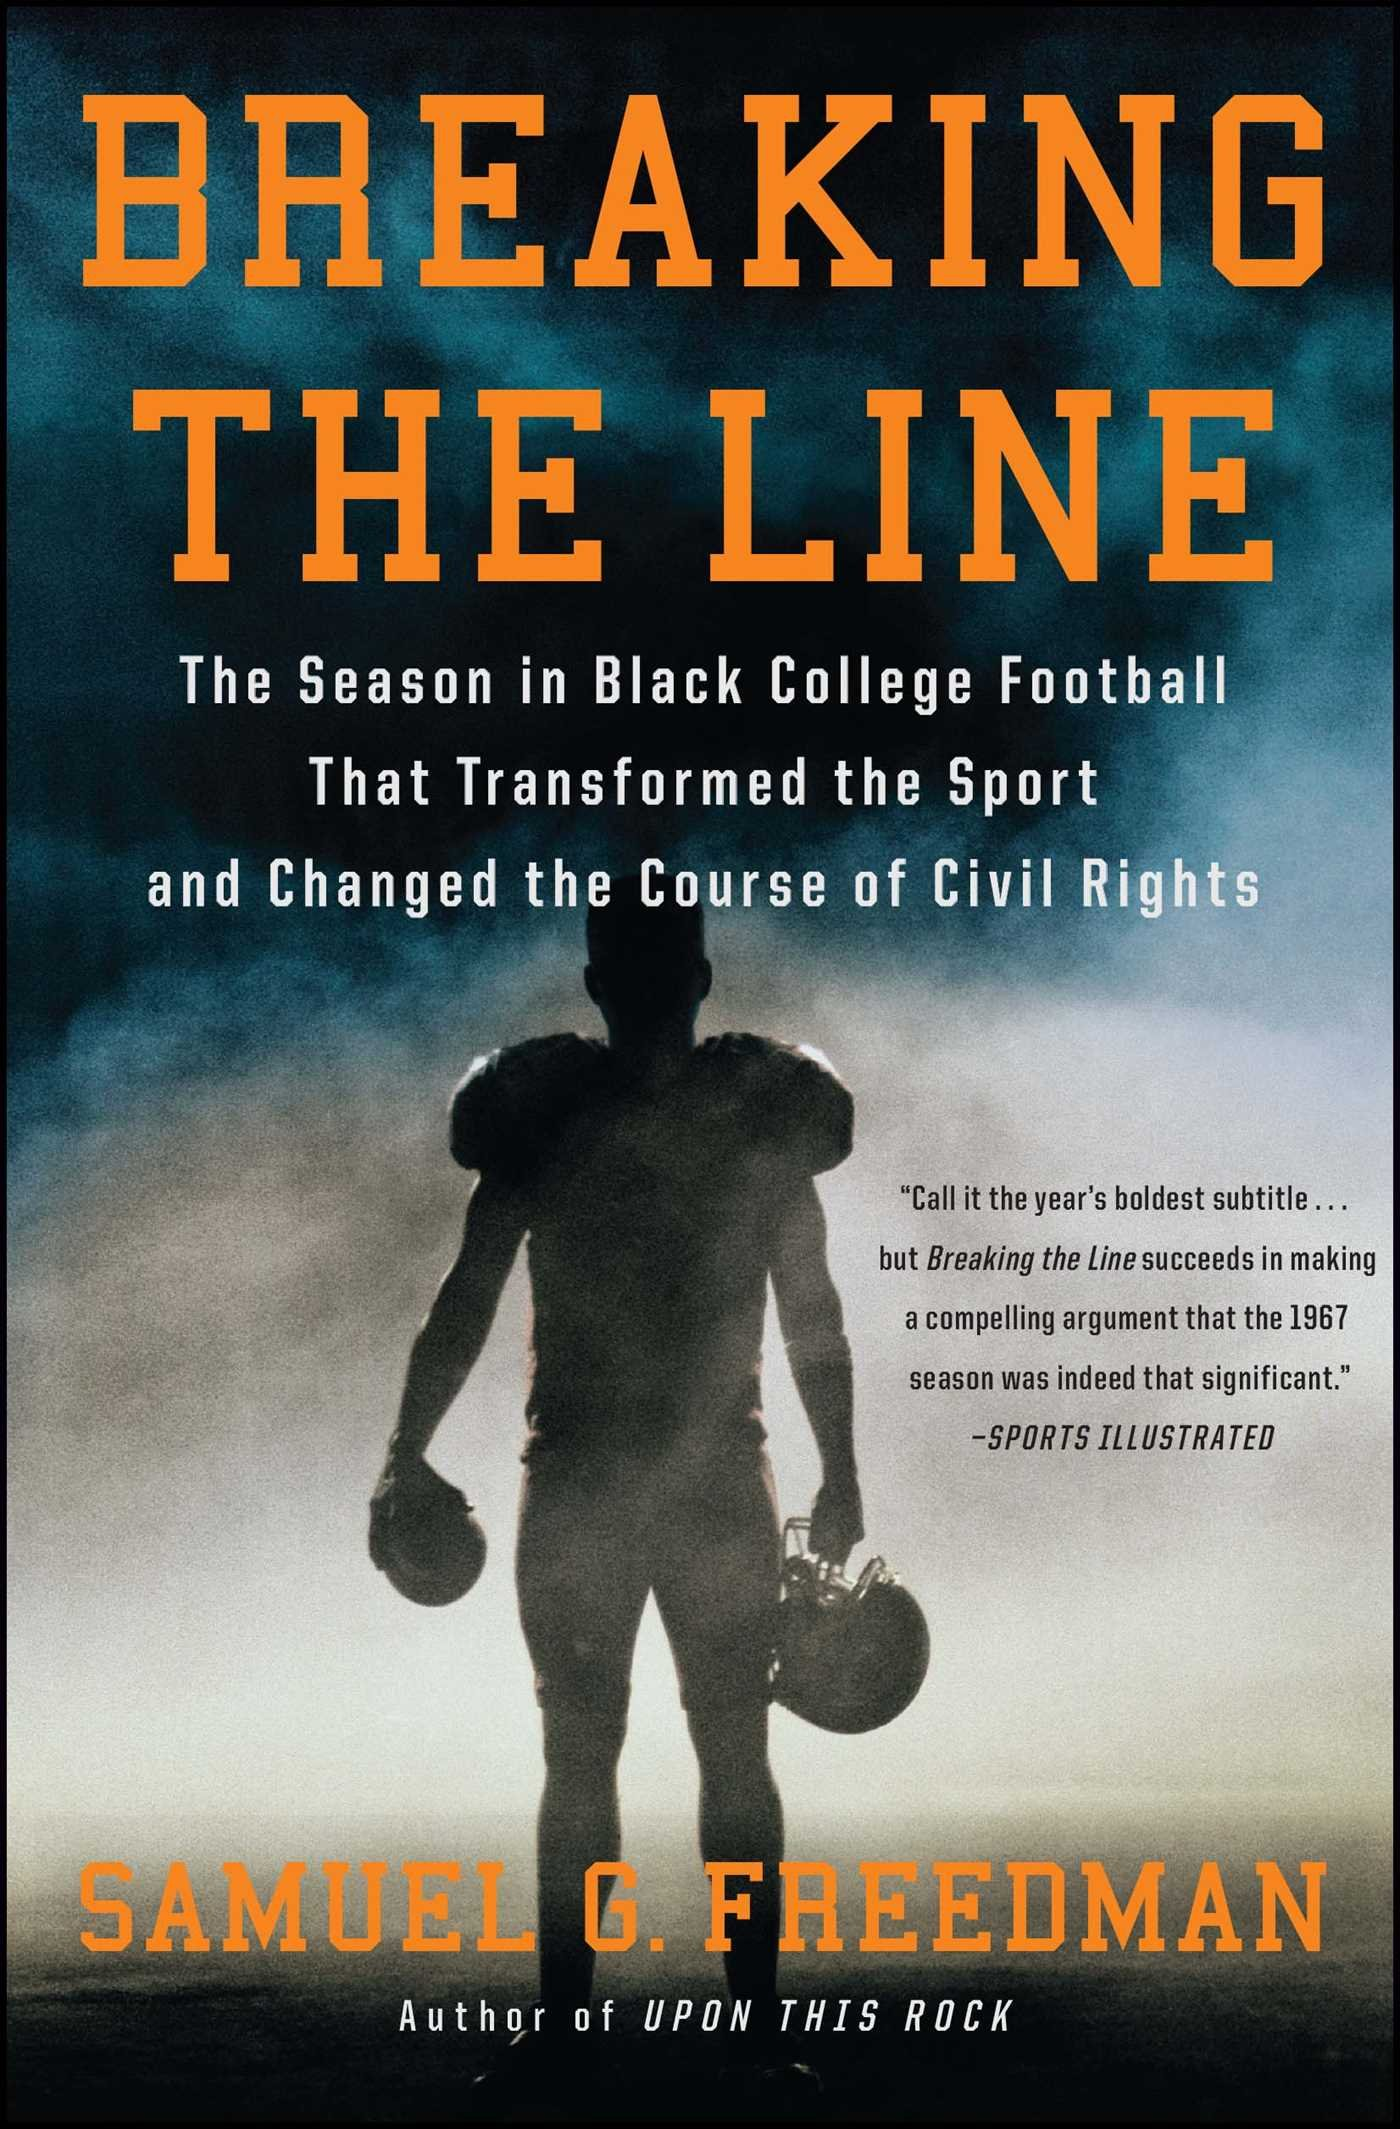 81IhNOzsk1L HBCU Football Books to Add to Your Library